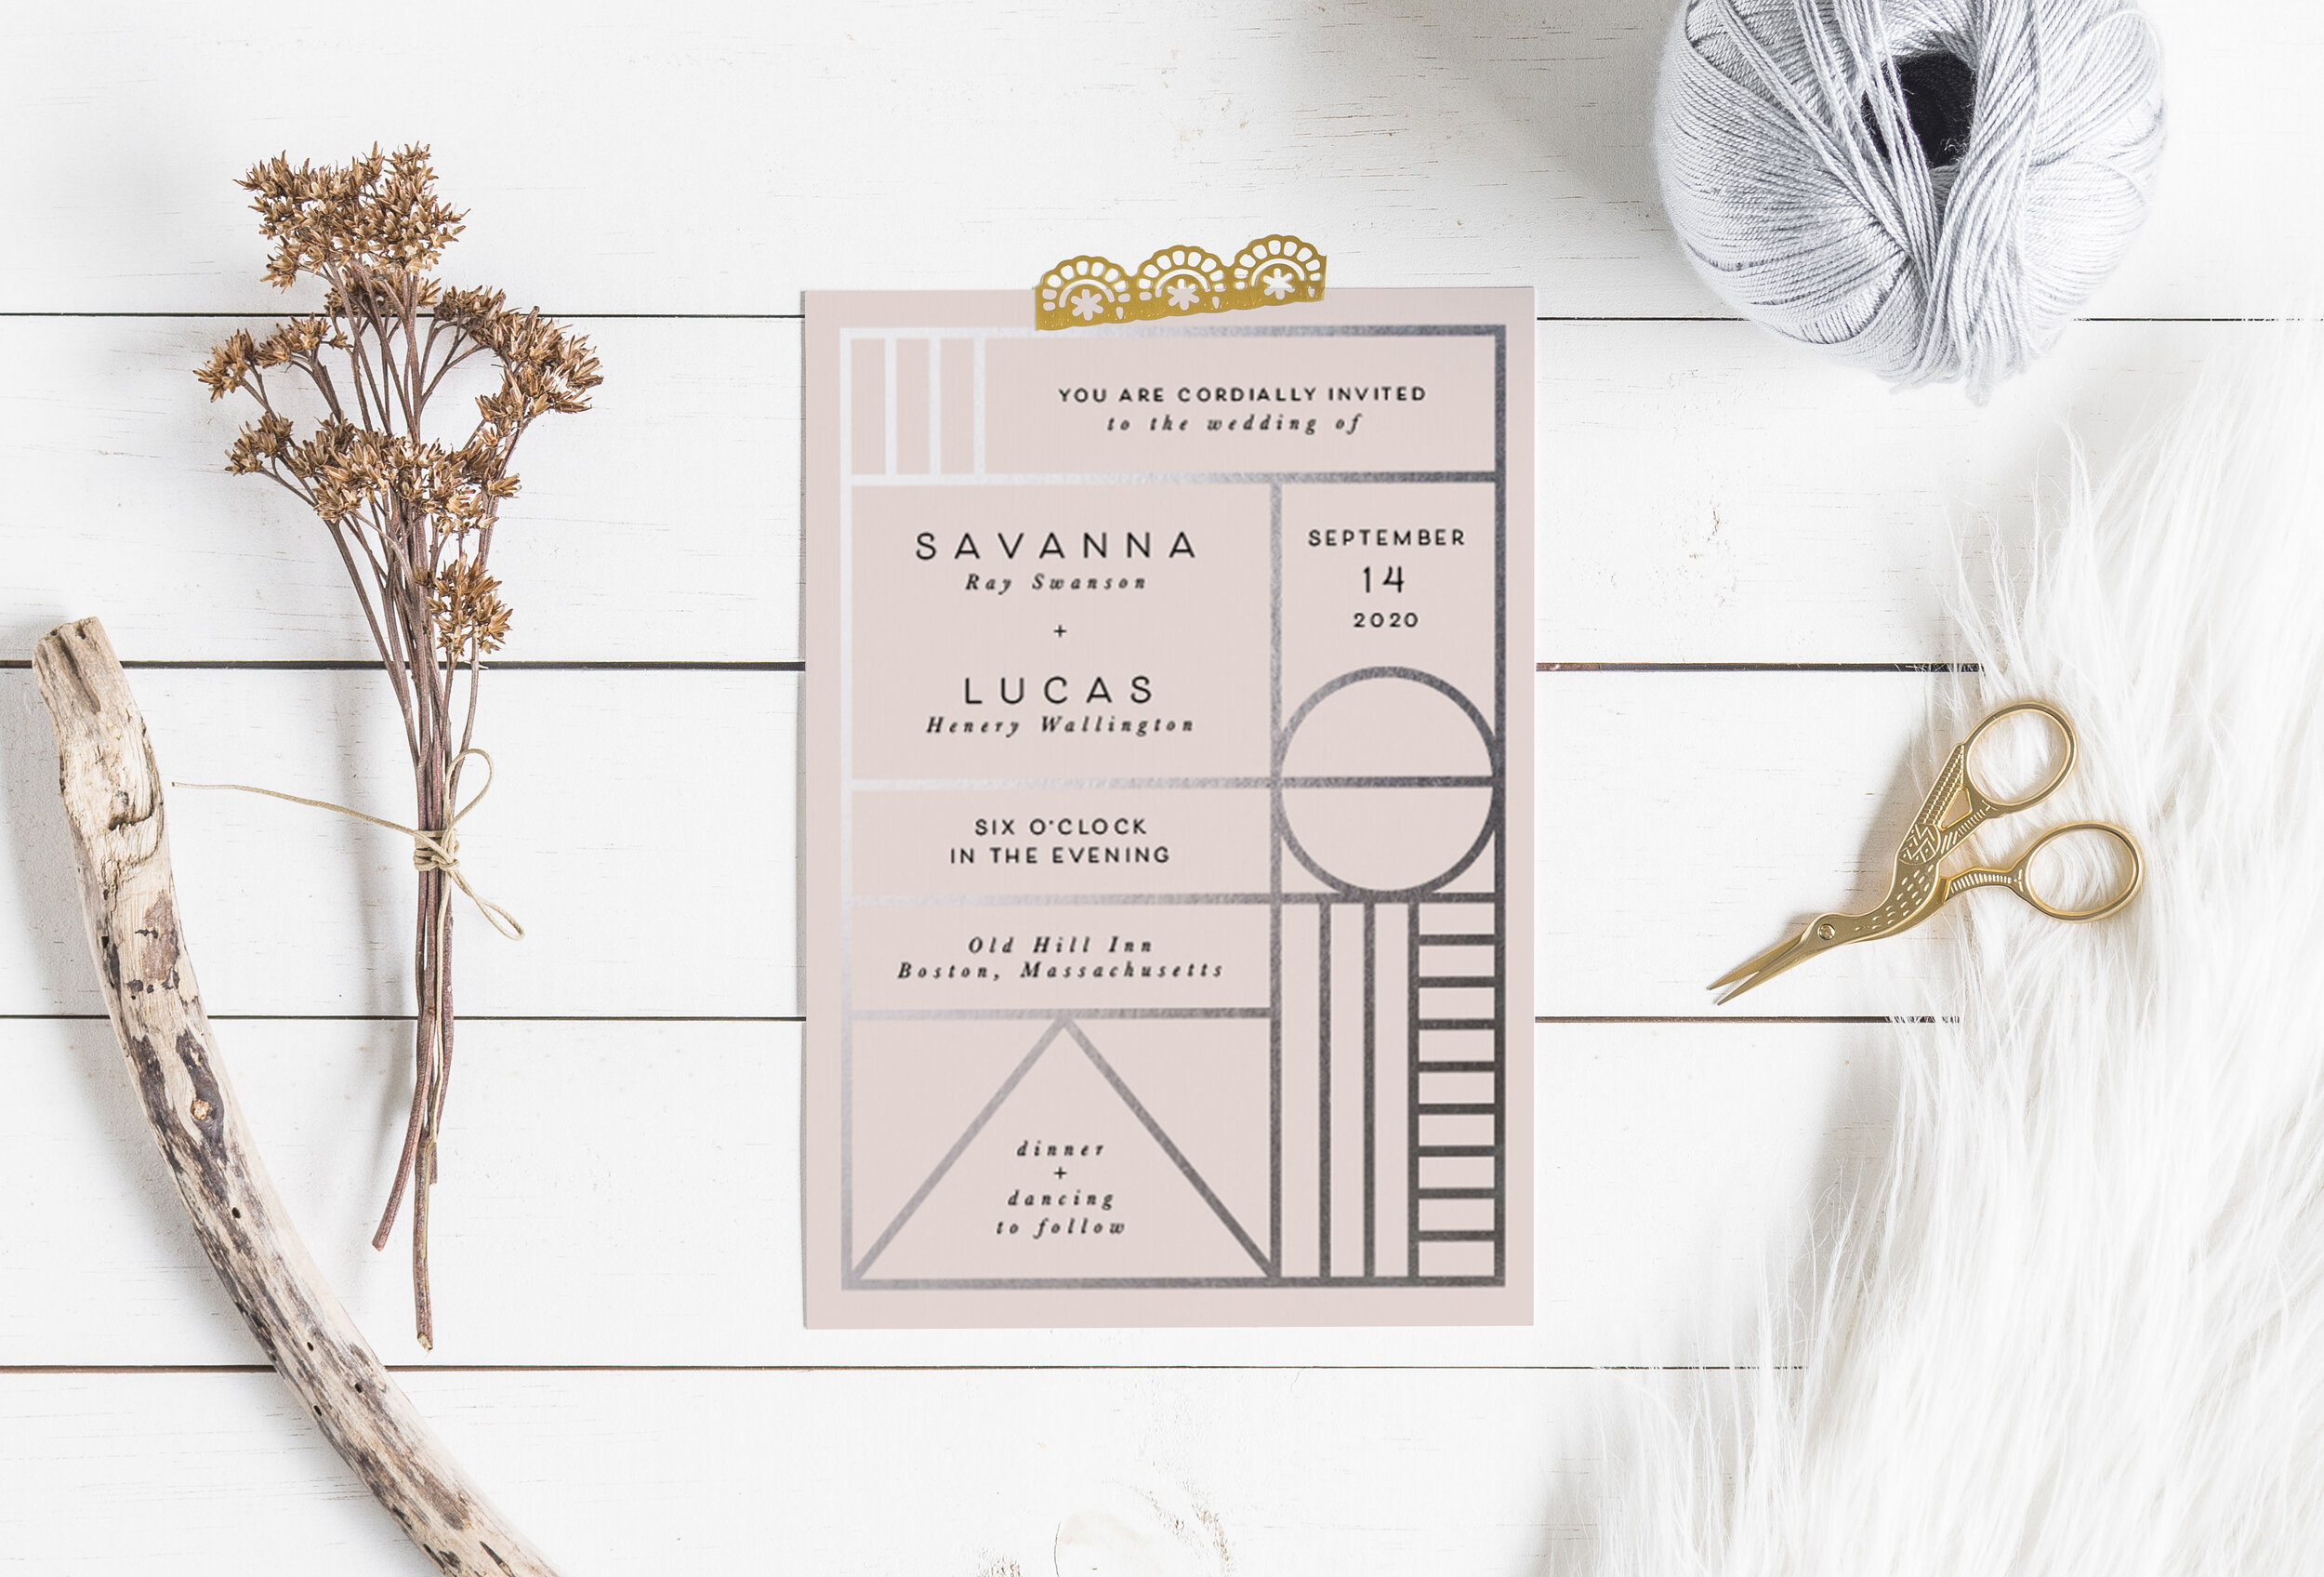 Event Stationery - Browse our collection of modern, beautiful, high quality ready-made event stationery. We can customise our ready-made designs or create a bespoke custom design.